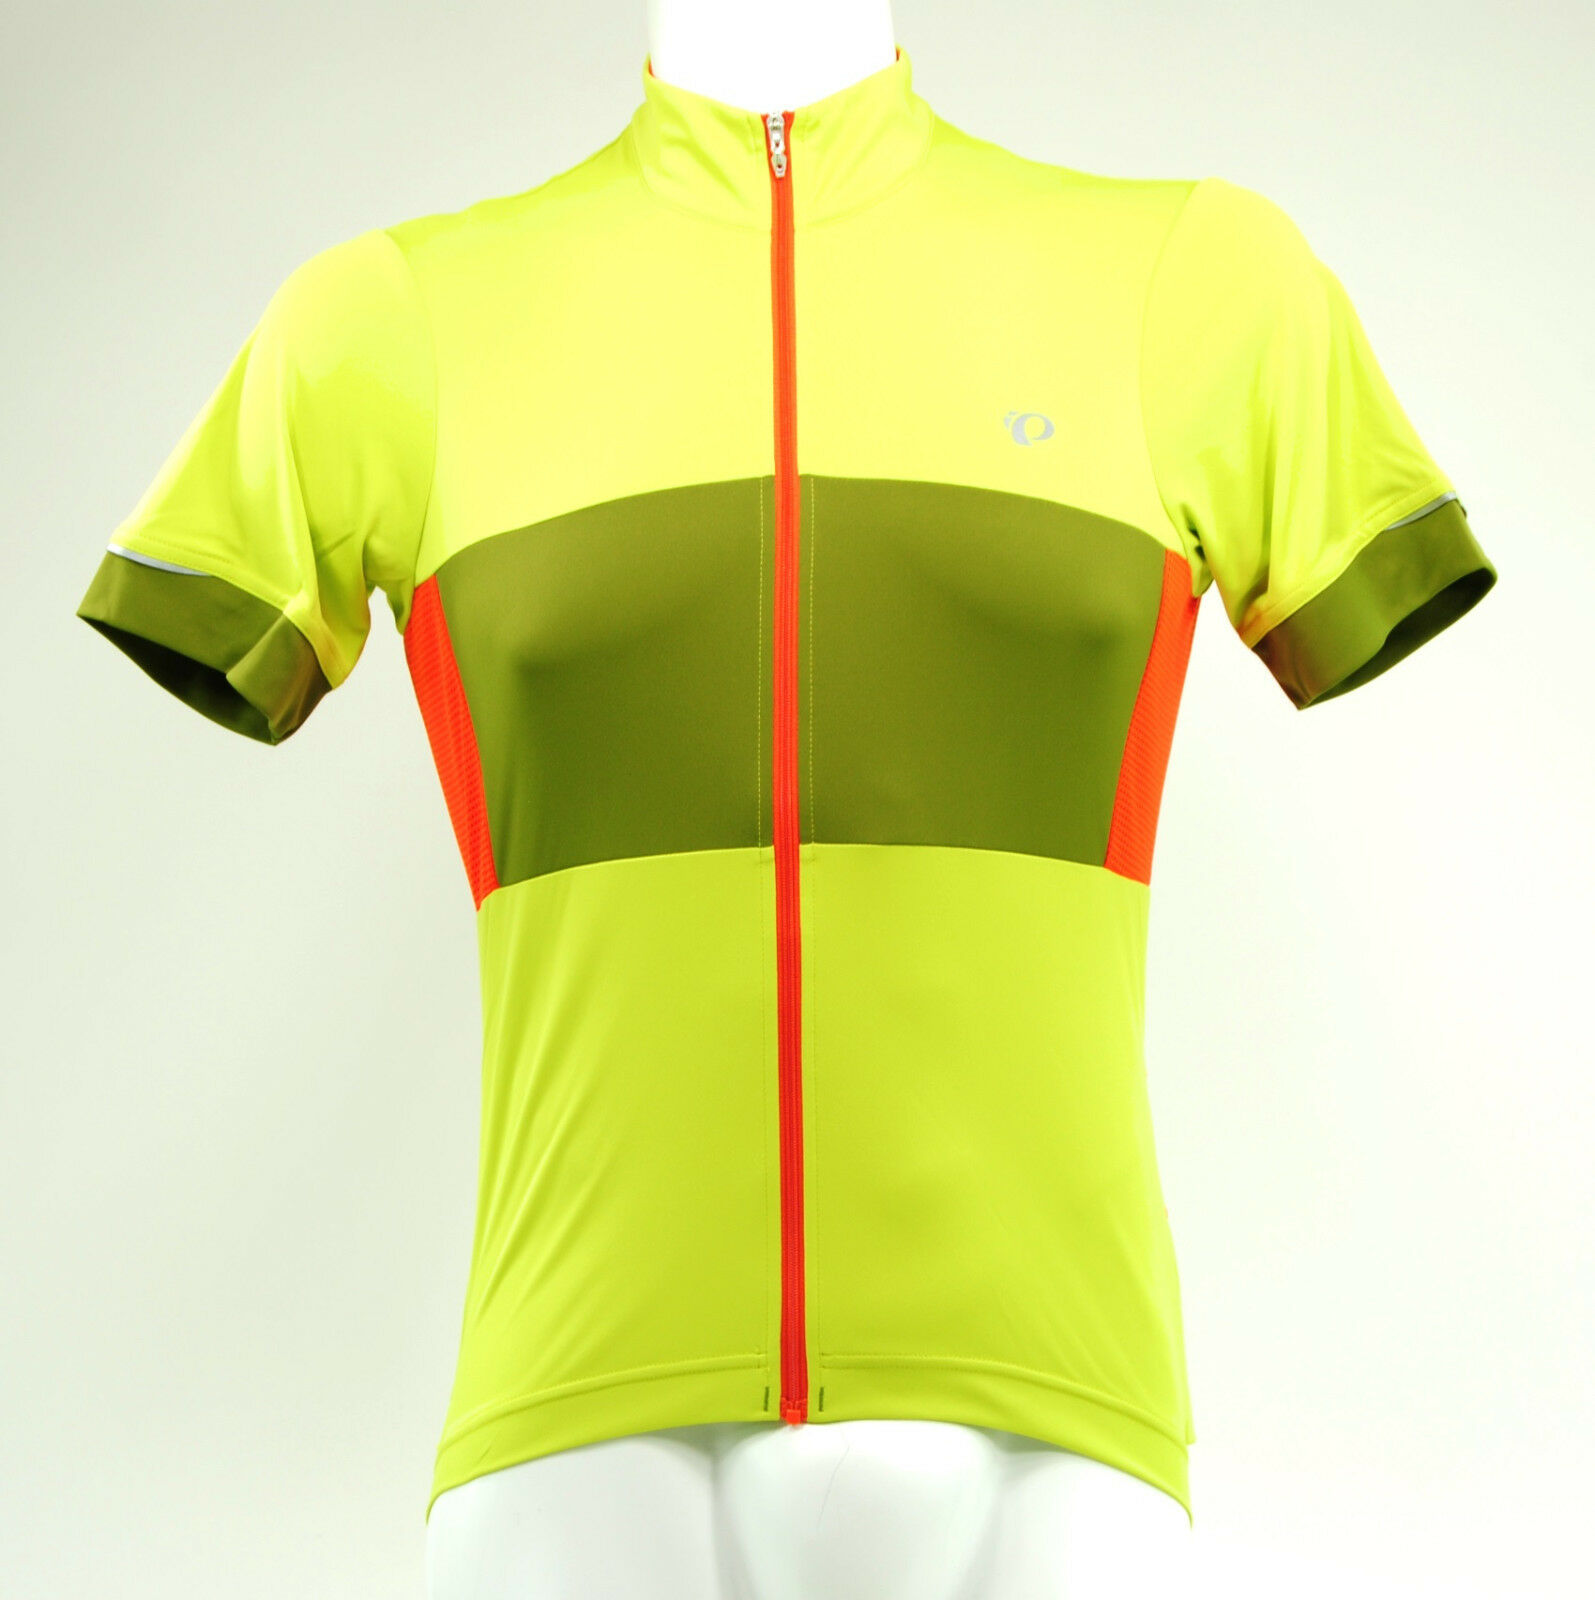 Pearl Izumi Elite Escape Semi Form Cycling Jersey, Citron/Avocado, Extra Large